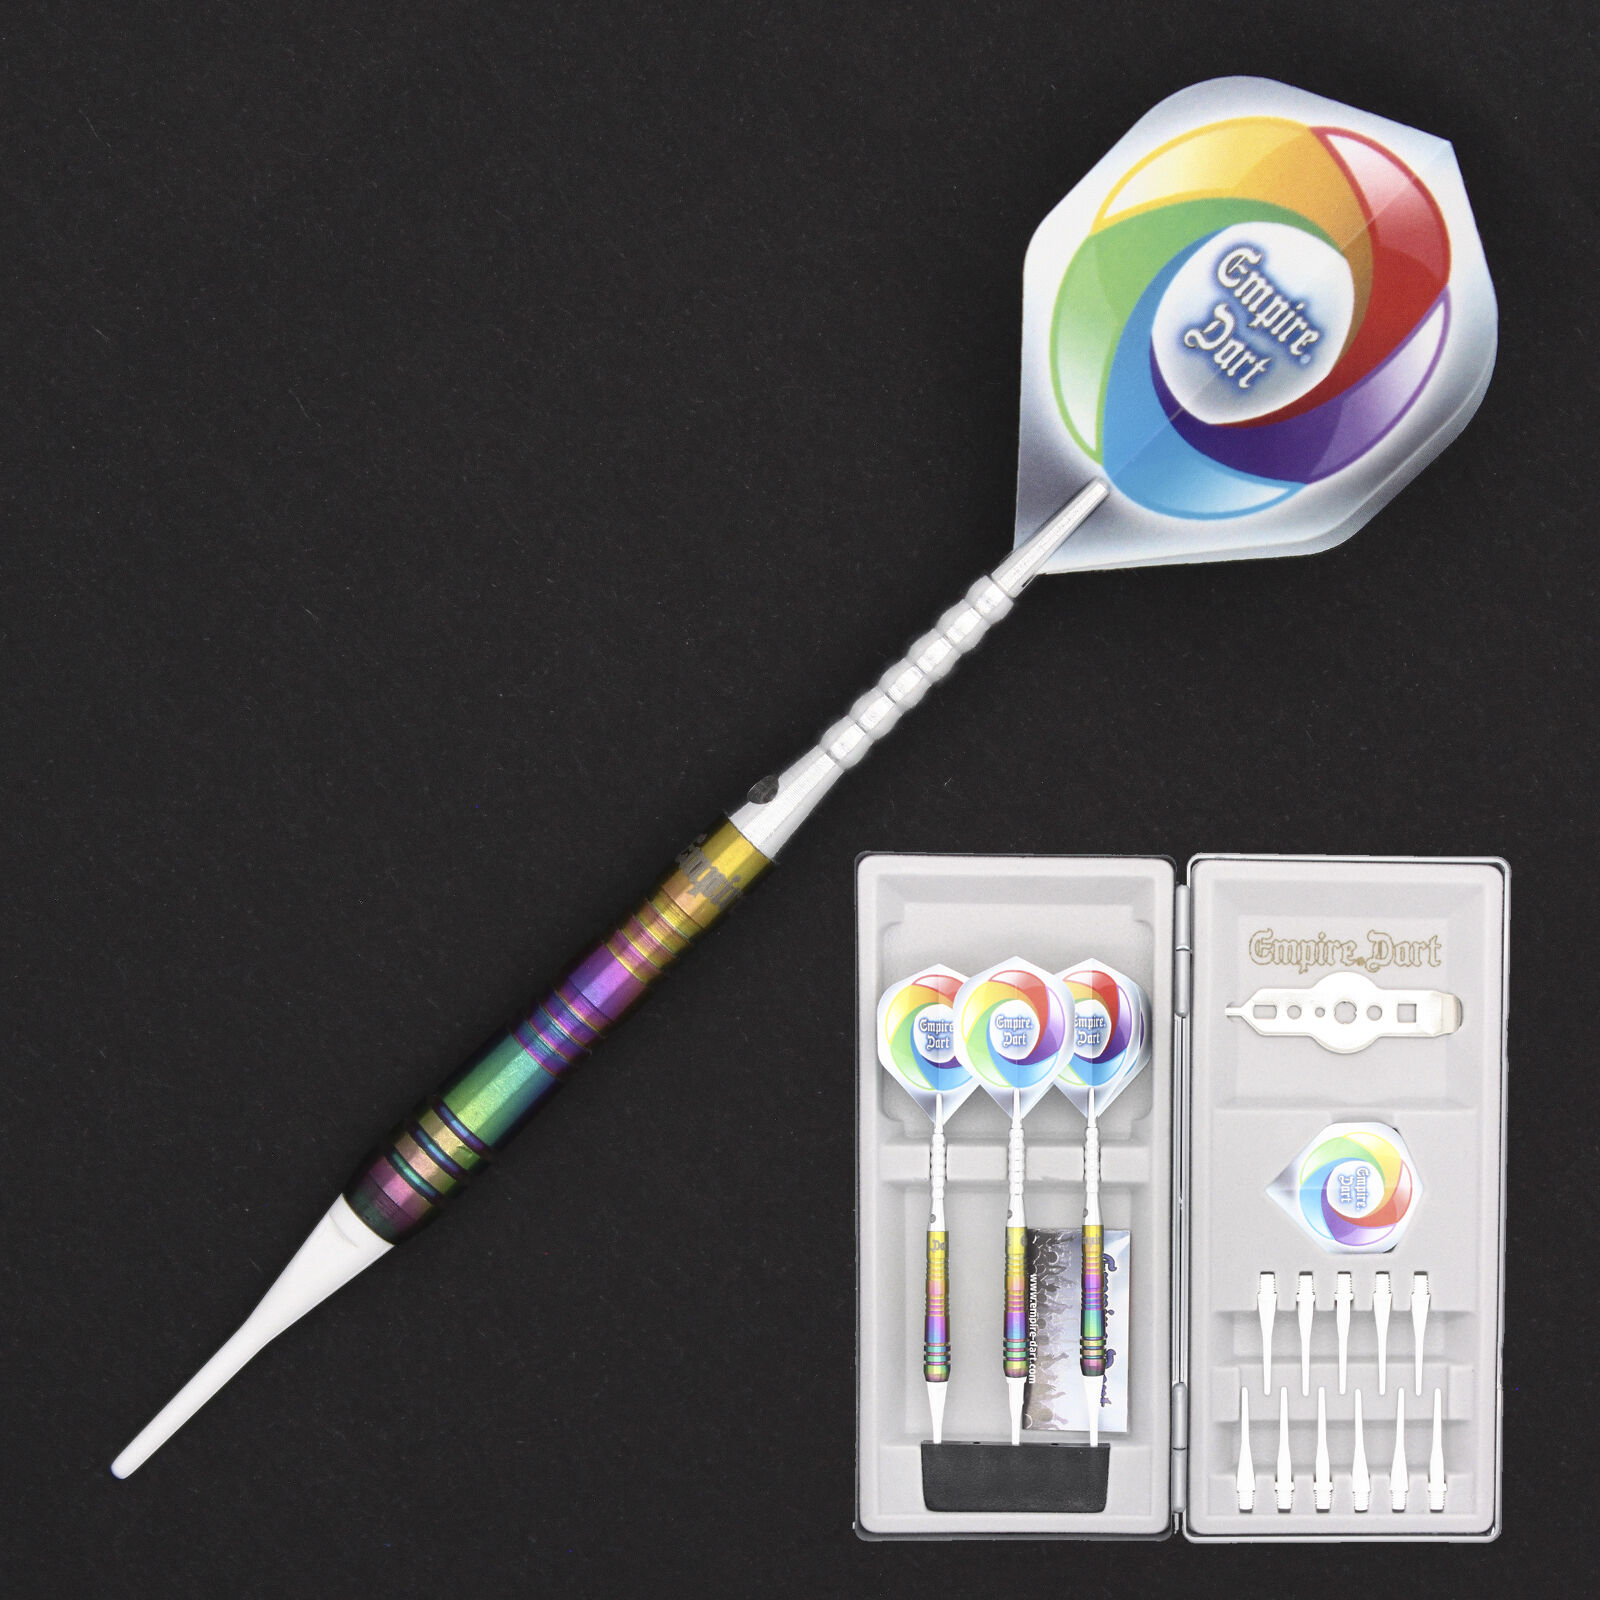 SOFT DART PFEIL SET - EMPIRE DART - EXPLORER - 80% TUNGSTEN MULTICOLOR - 18g